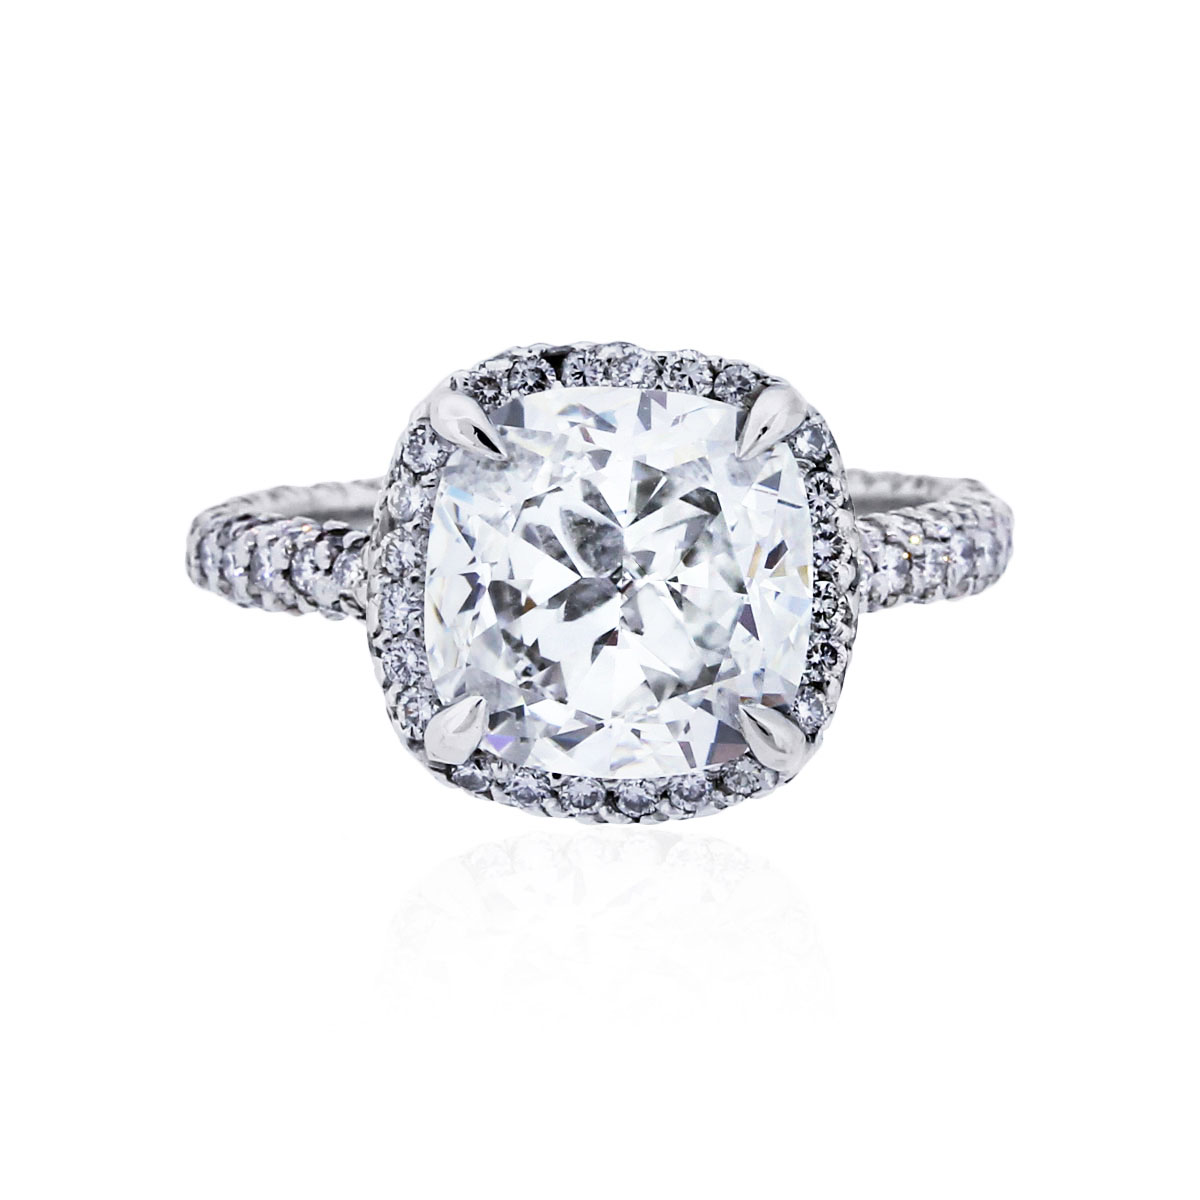 You Are Viewing This Platinum 302ct Cushion Cut Diamond Engagement Ring!